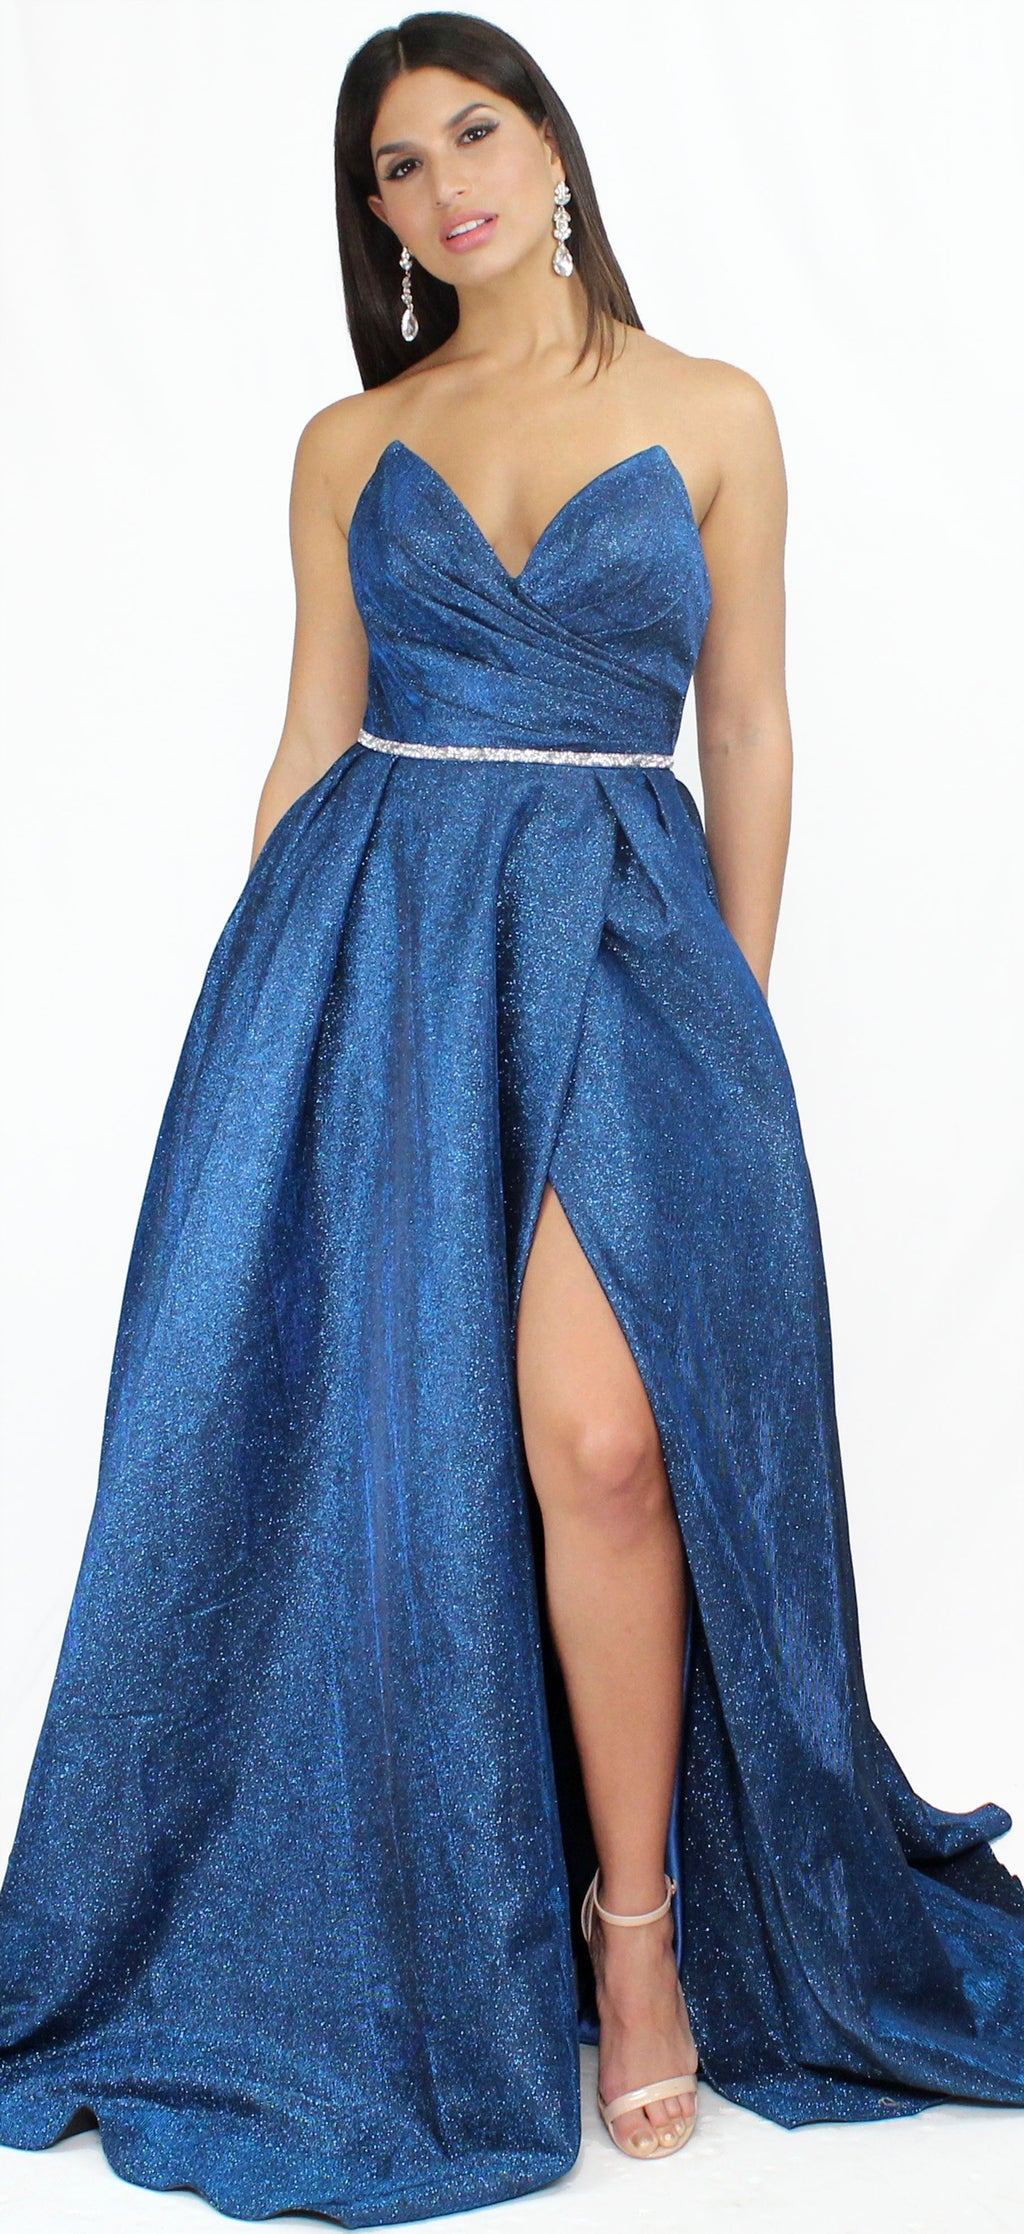 Wishful Wandering Shimmer Dark Royal Gown